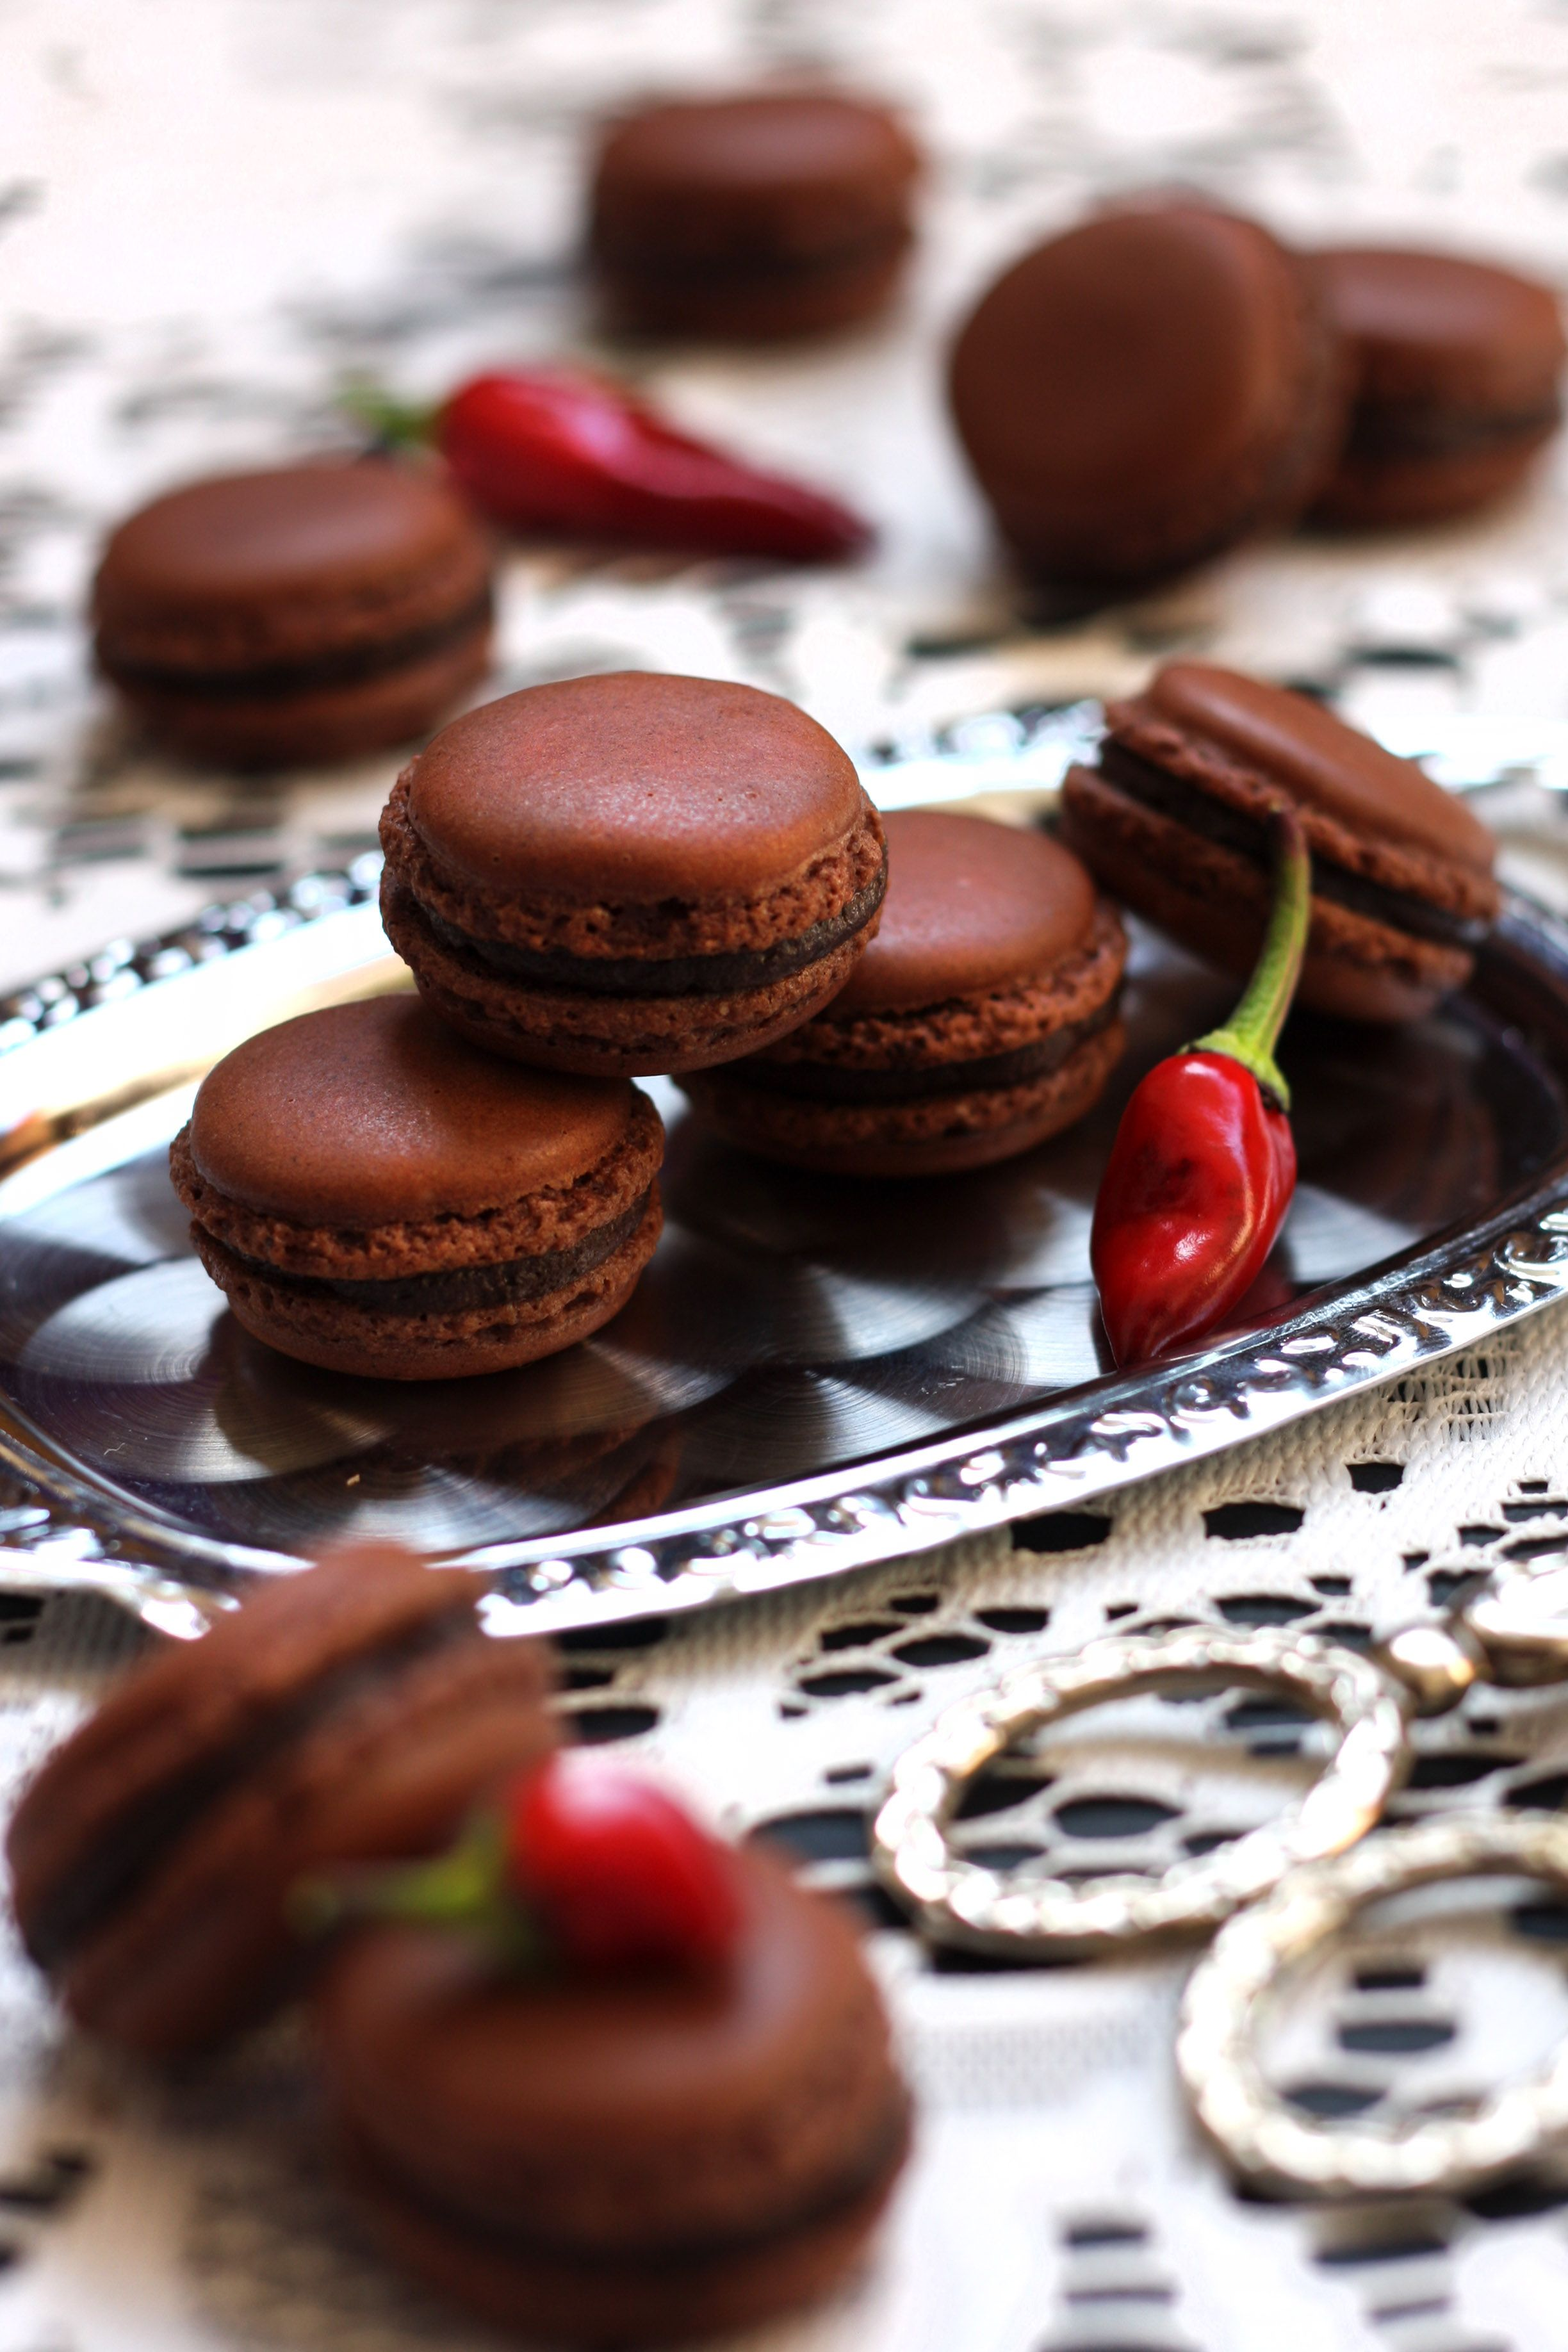 macarons mit schoko chili ganache sweets 4my sweets pinterest backen kuchen und geb ck. Black Bedroom Furniture Sets. Home Design Ideas